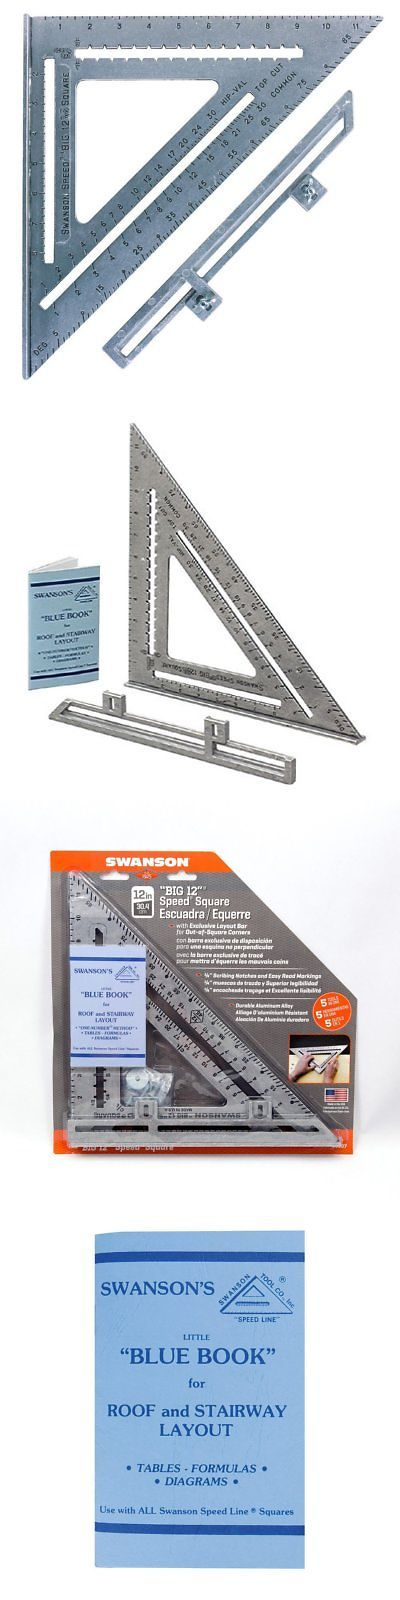 Details About Swanson Tool S0107 12 Inch Speed Square Layout Tool With Blue Book Speed Square Layout Blue Books